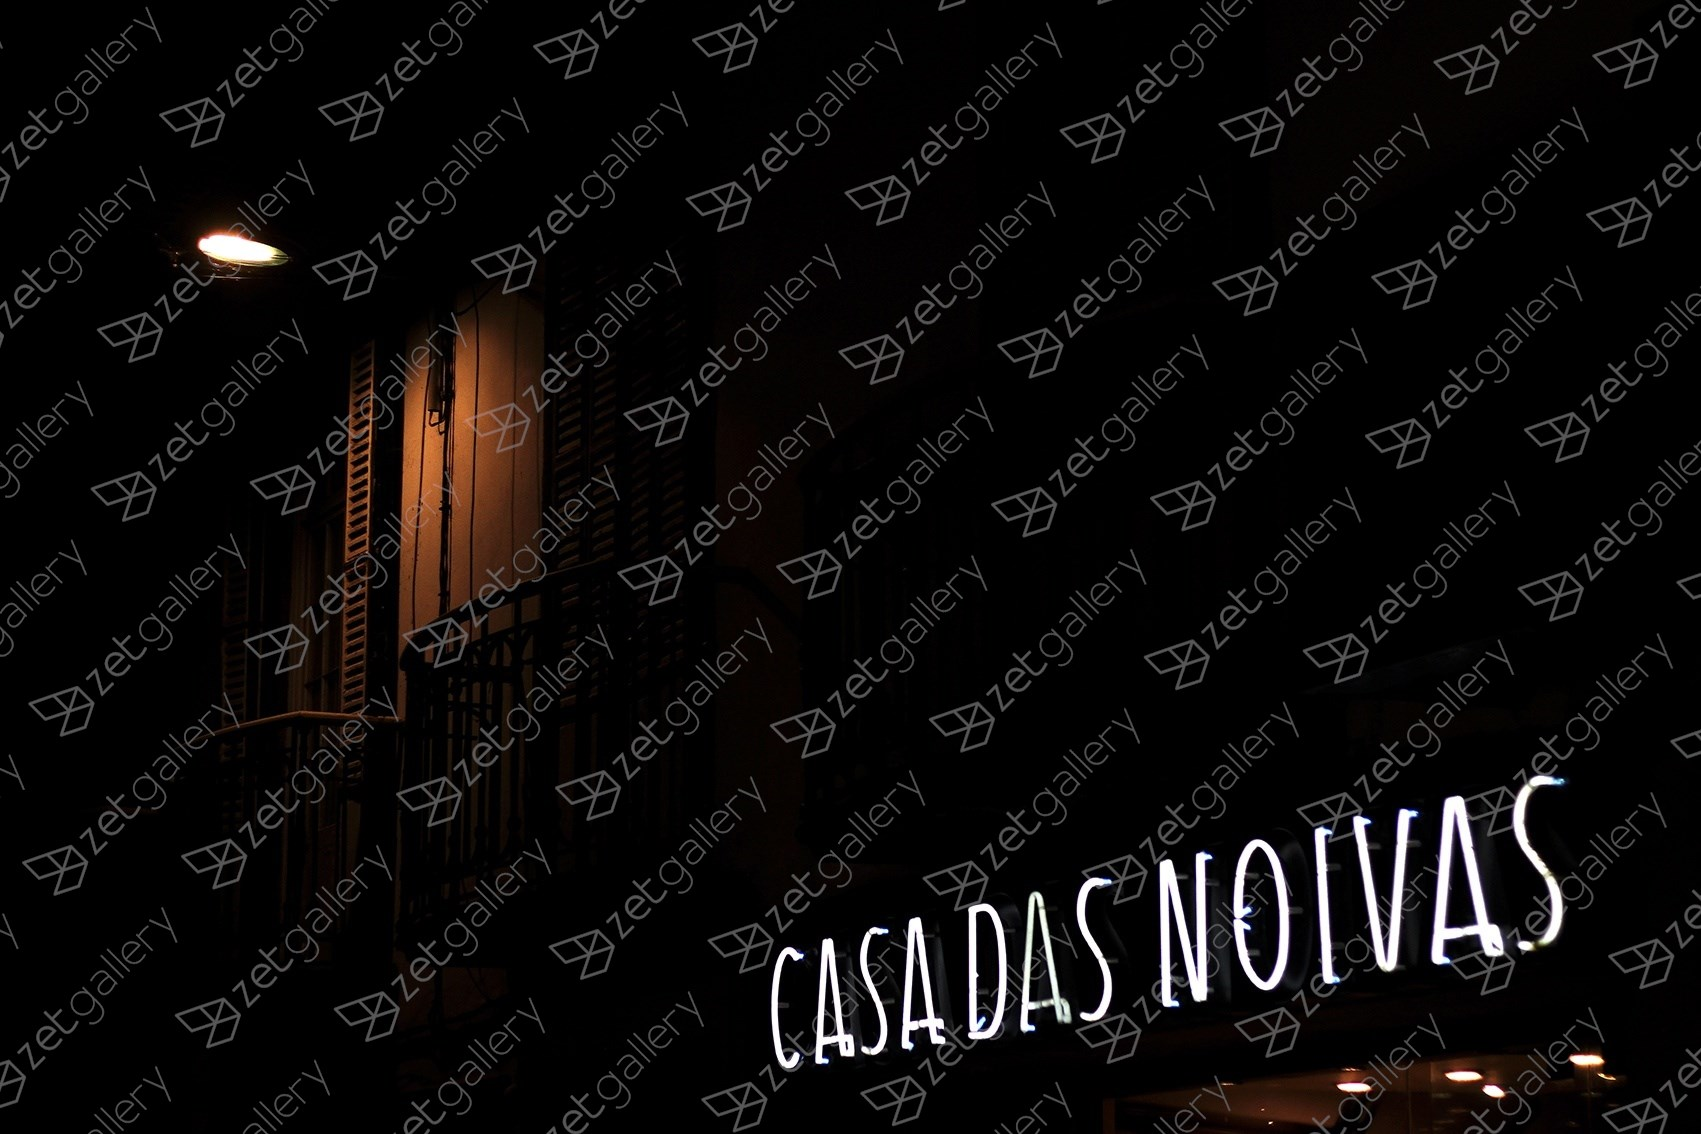 CASA DAS NOIVAS, original Architecture Digital Photography by PAULO PRATA